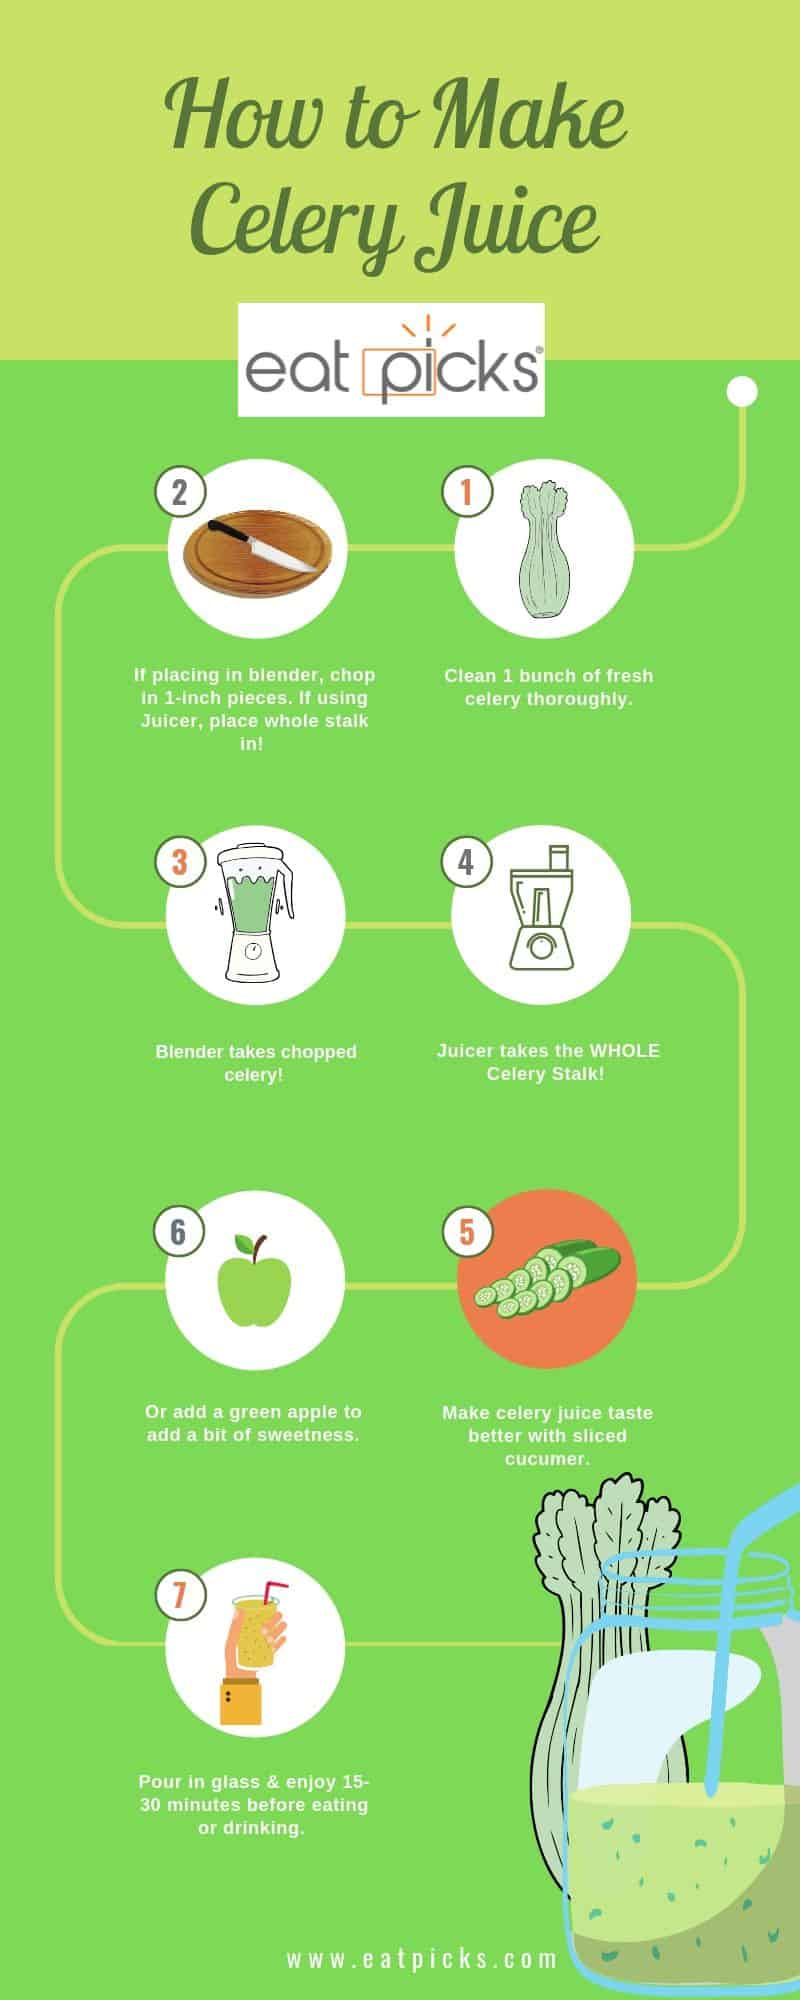 How to Make Celery Juice Infographic